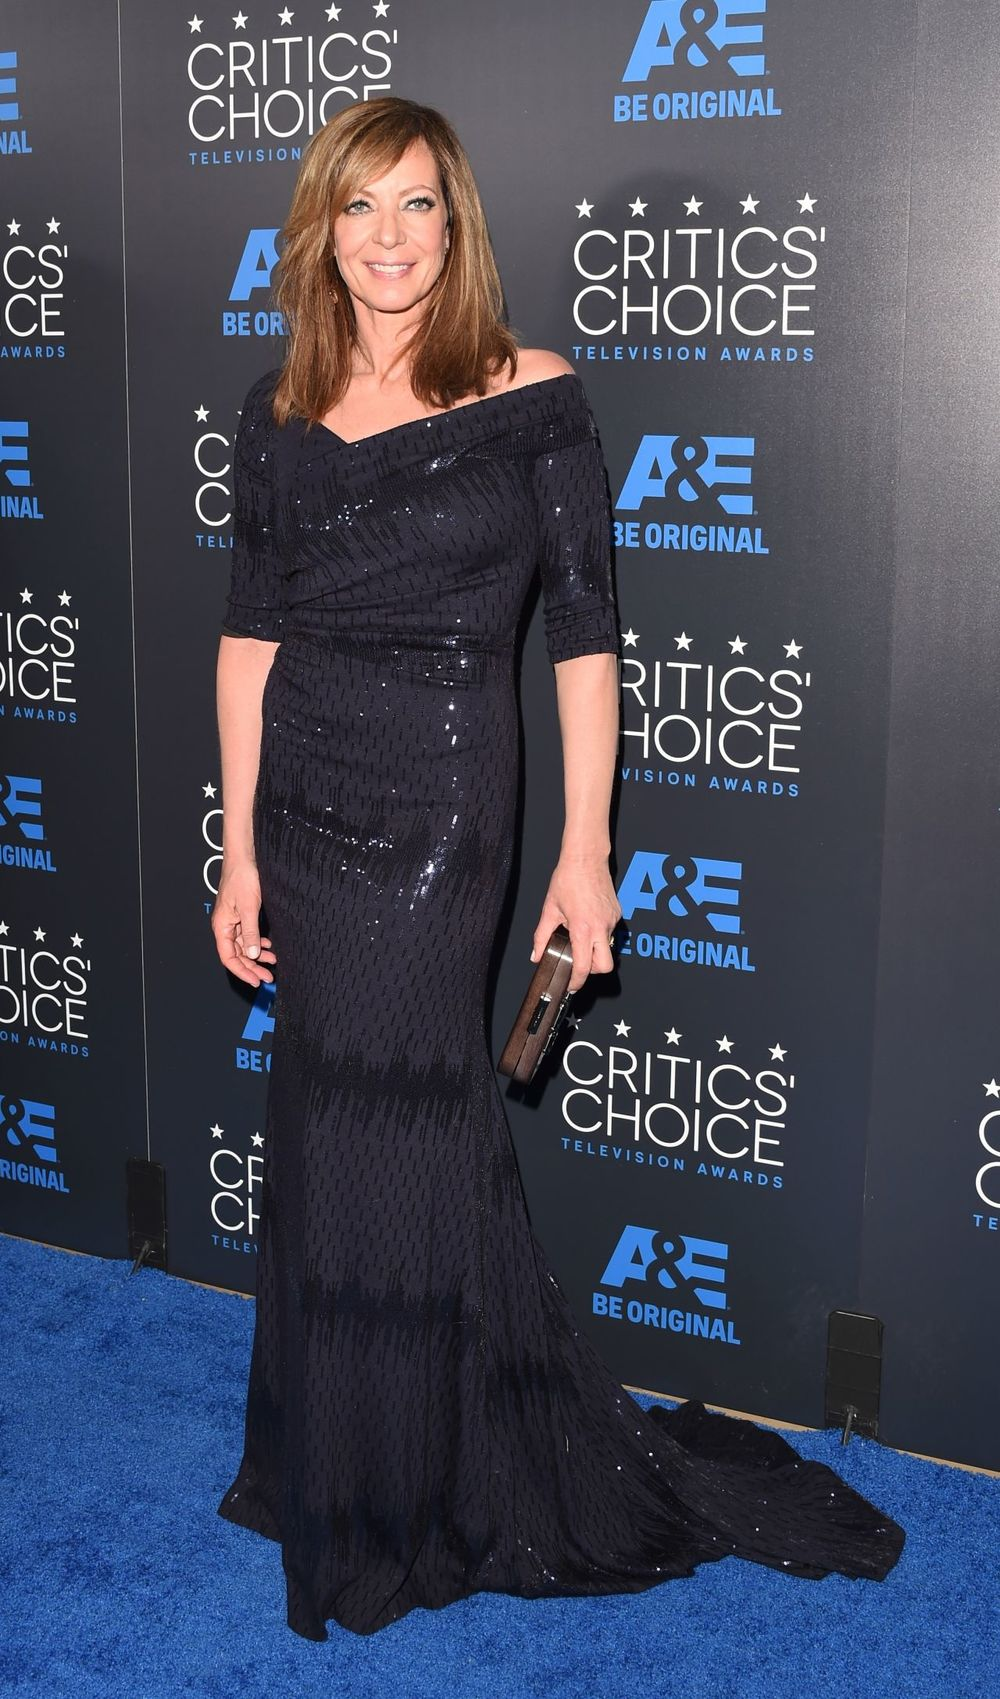 allison-janney-2015-critics-choice-television-awards-in-beverly-hills_1.jpg